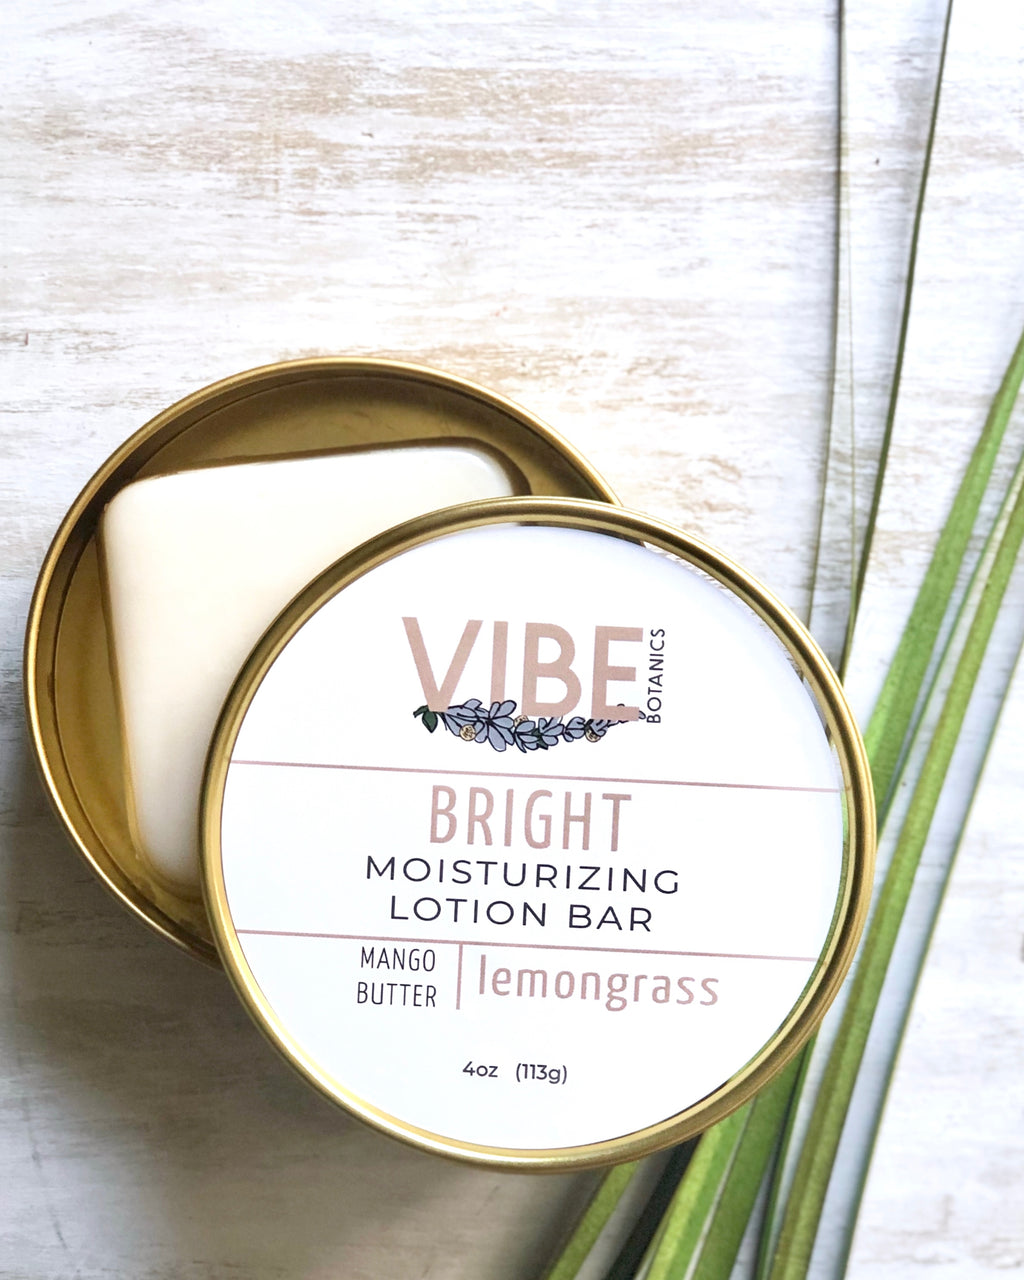 BRIGHT Moisturizing Lotion Bar